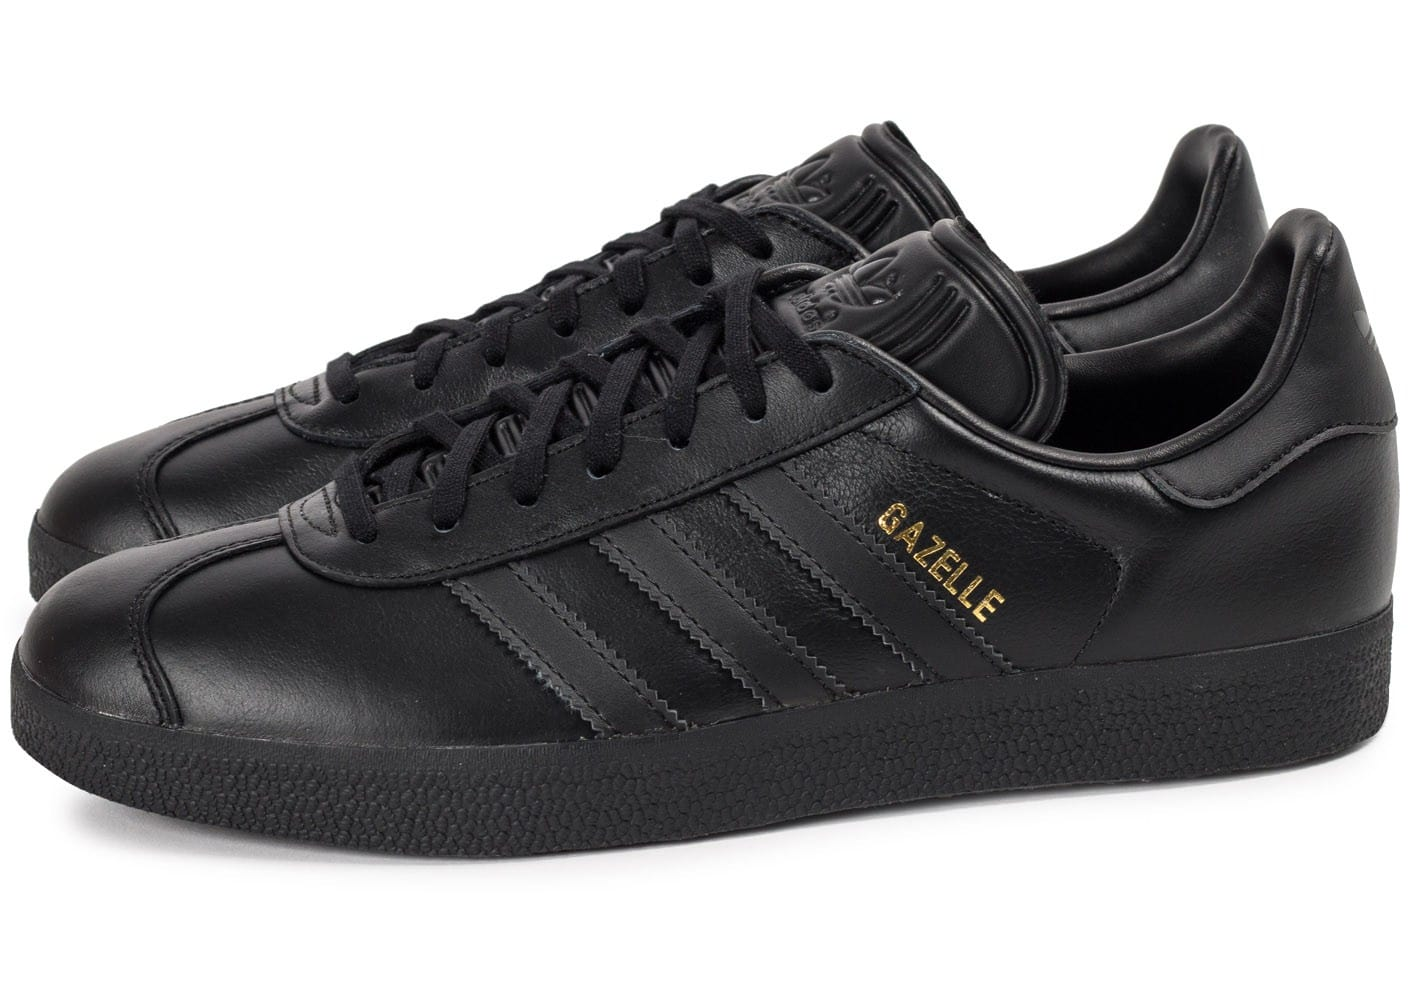 adidas gazelle cuir noire chaussures homme chausport. Black Bedroom Furniture Sets. Home Design Ideas